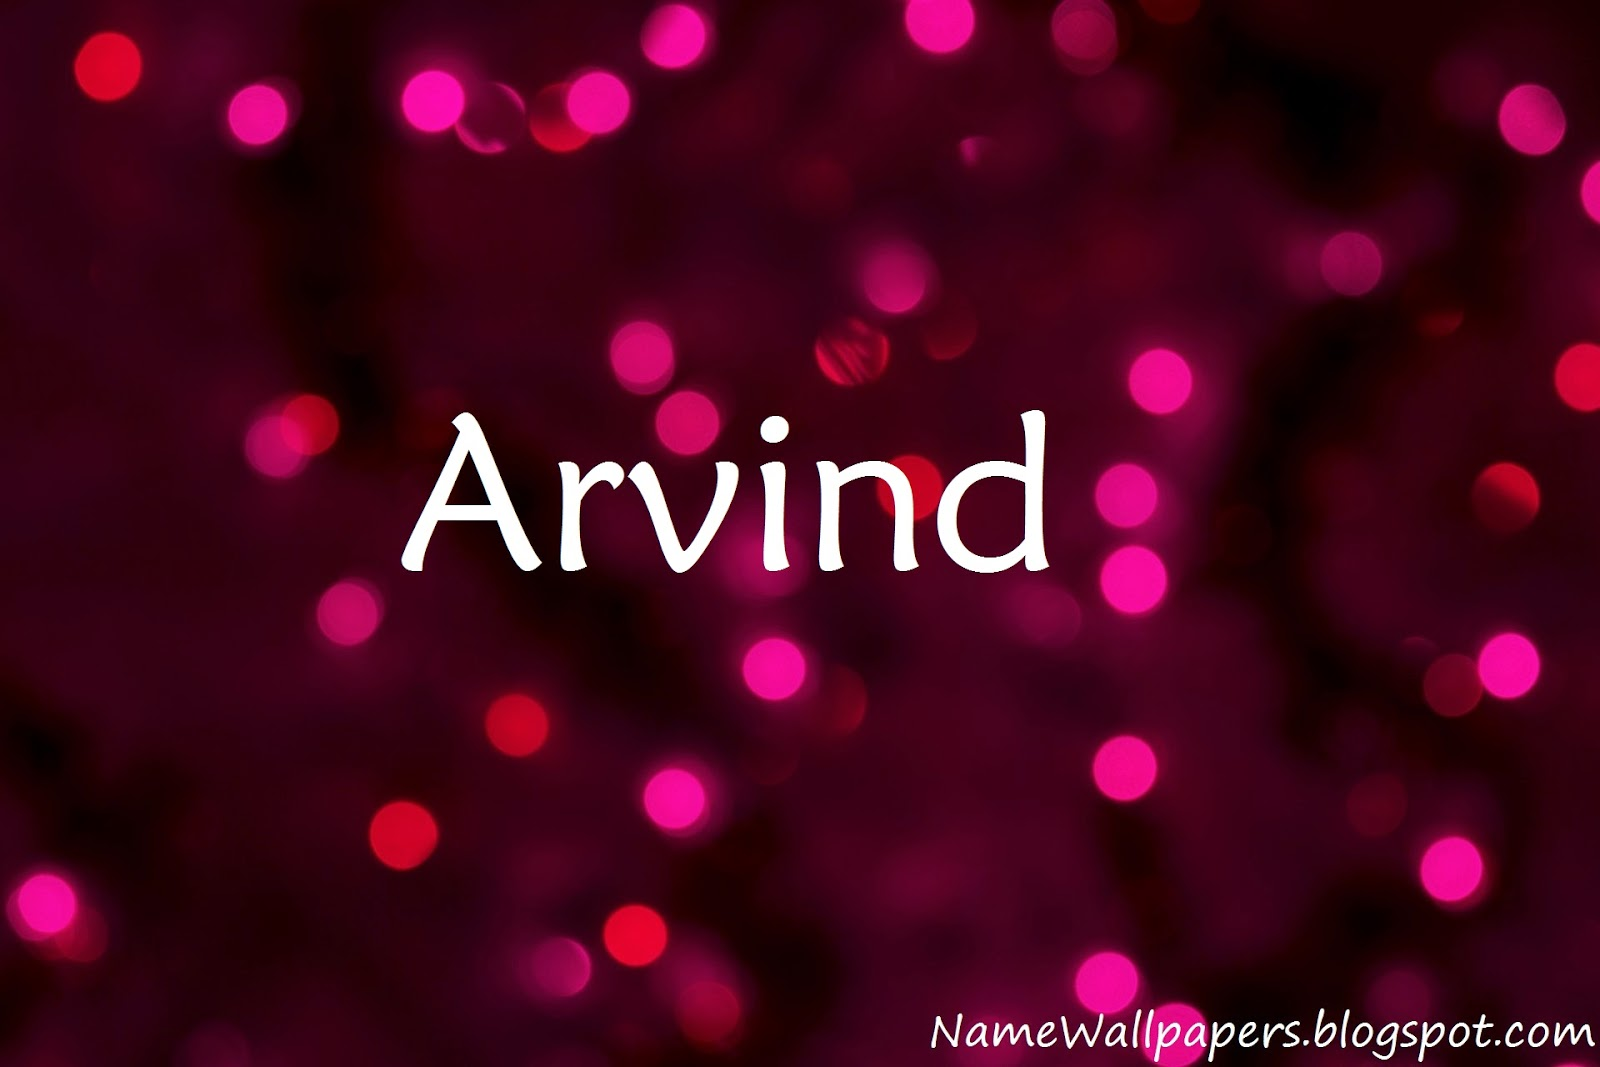 Black Removable Wallpaper Download Arvind Name Wallpaper Gallery